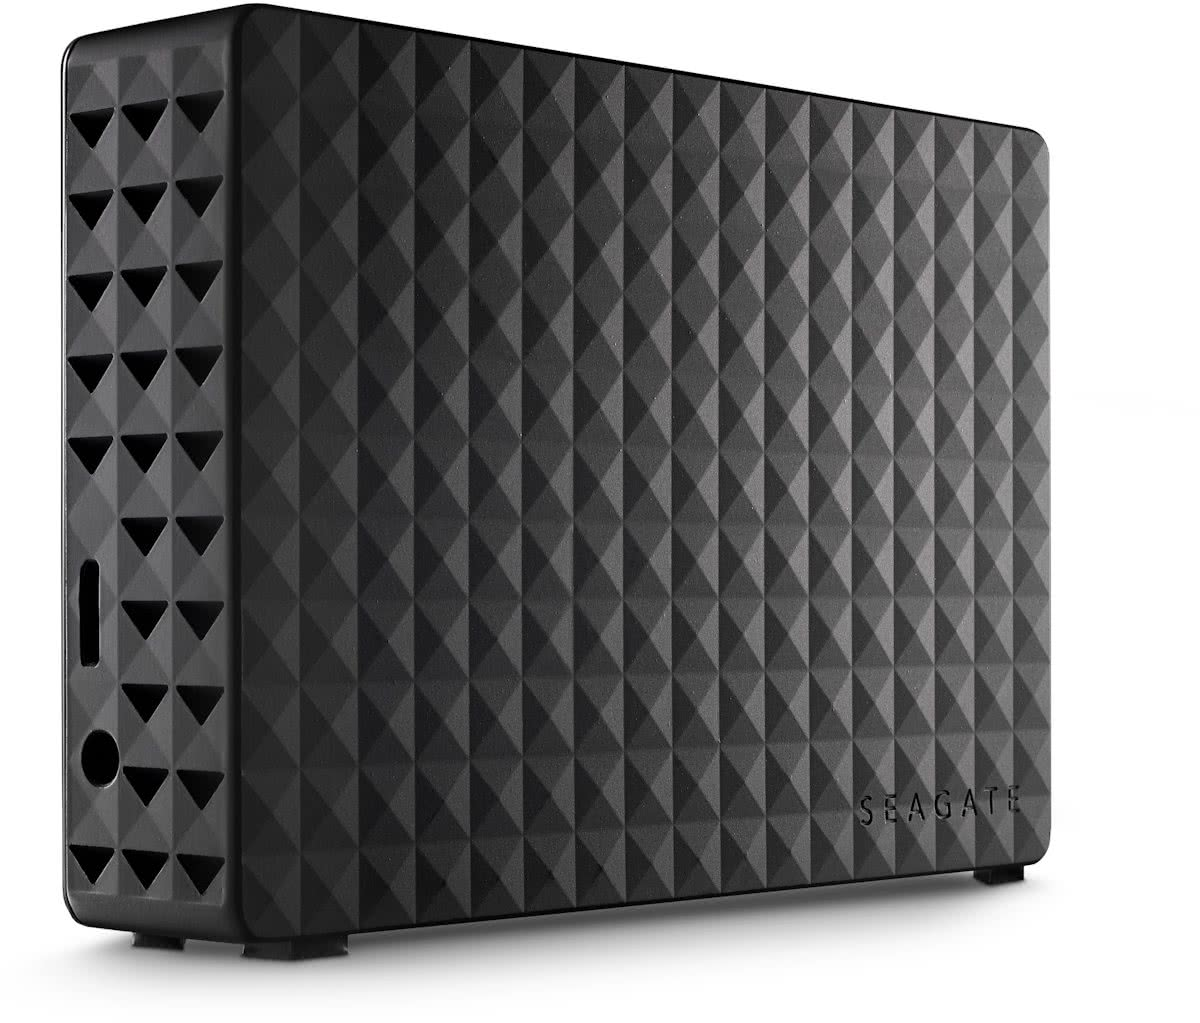 Expansion Desktop -   - 4 TB